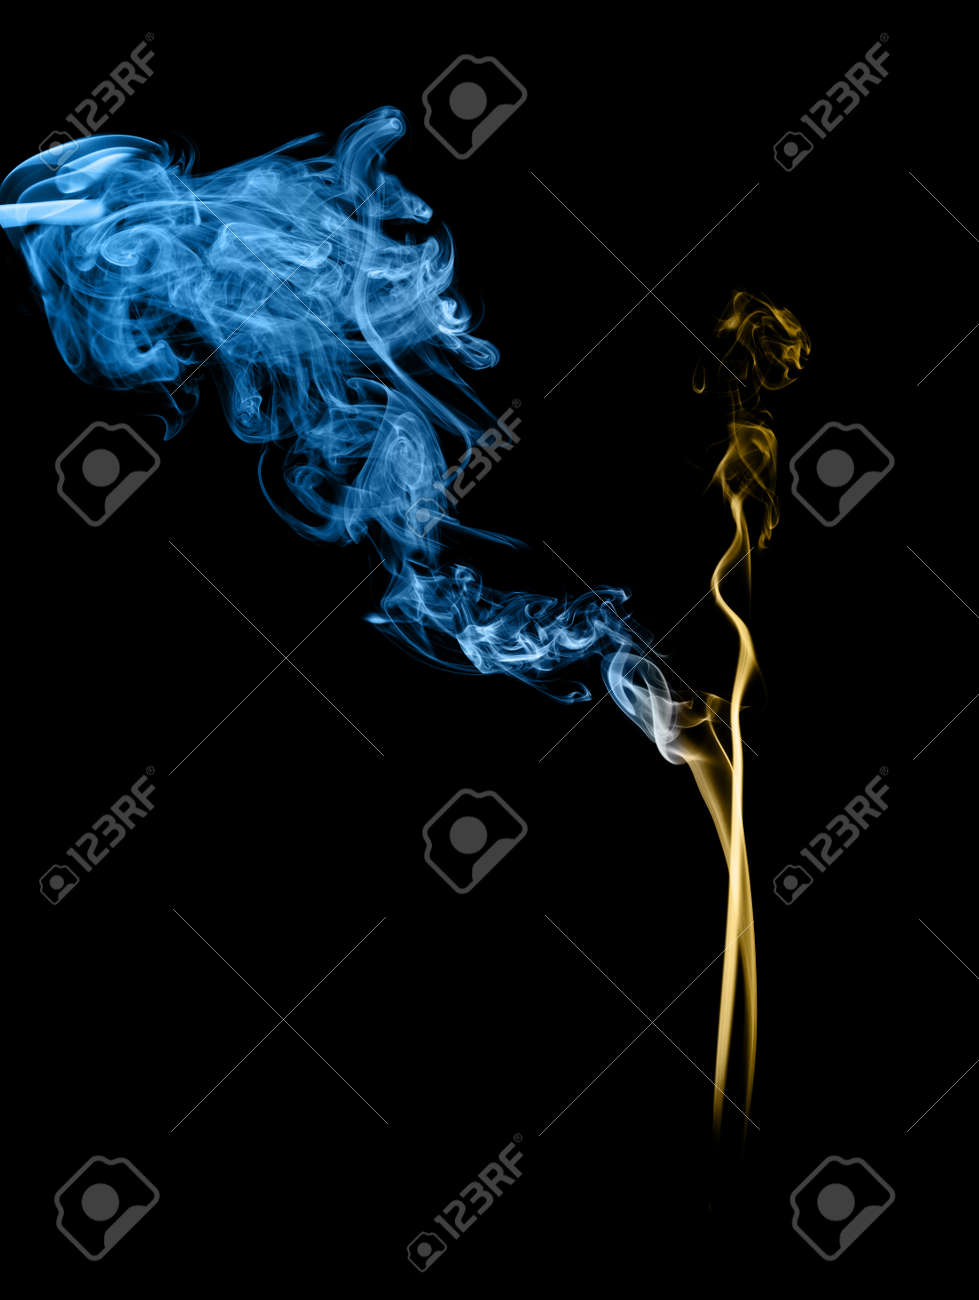 Smoke art with black background in toned color Stock Photo - 17200822